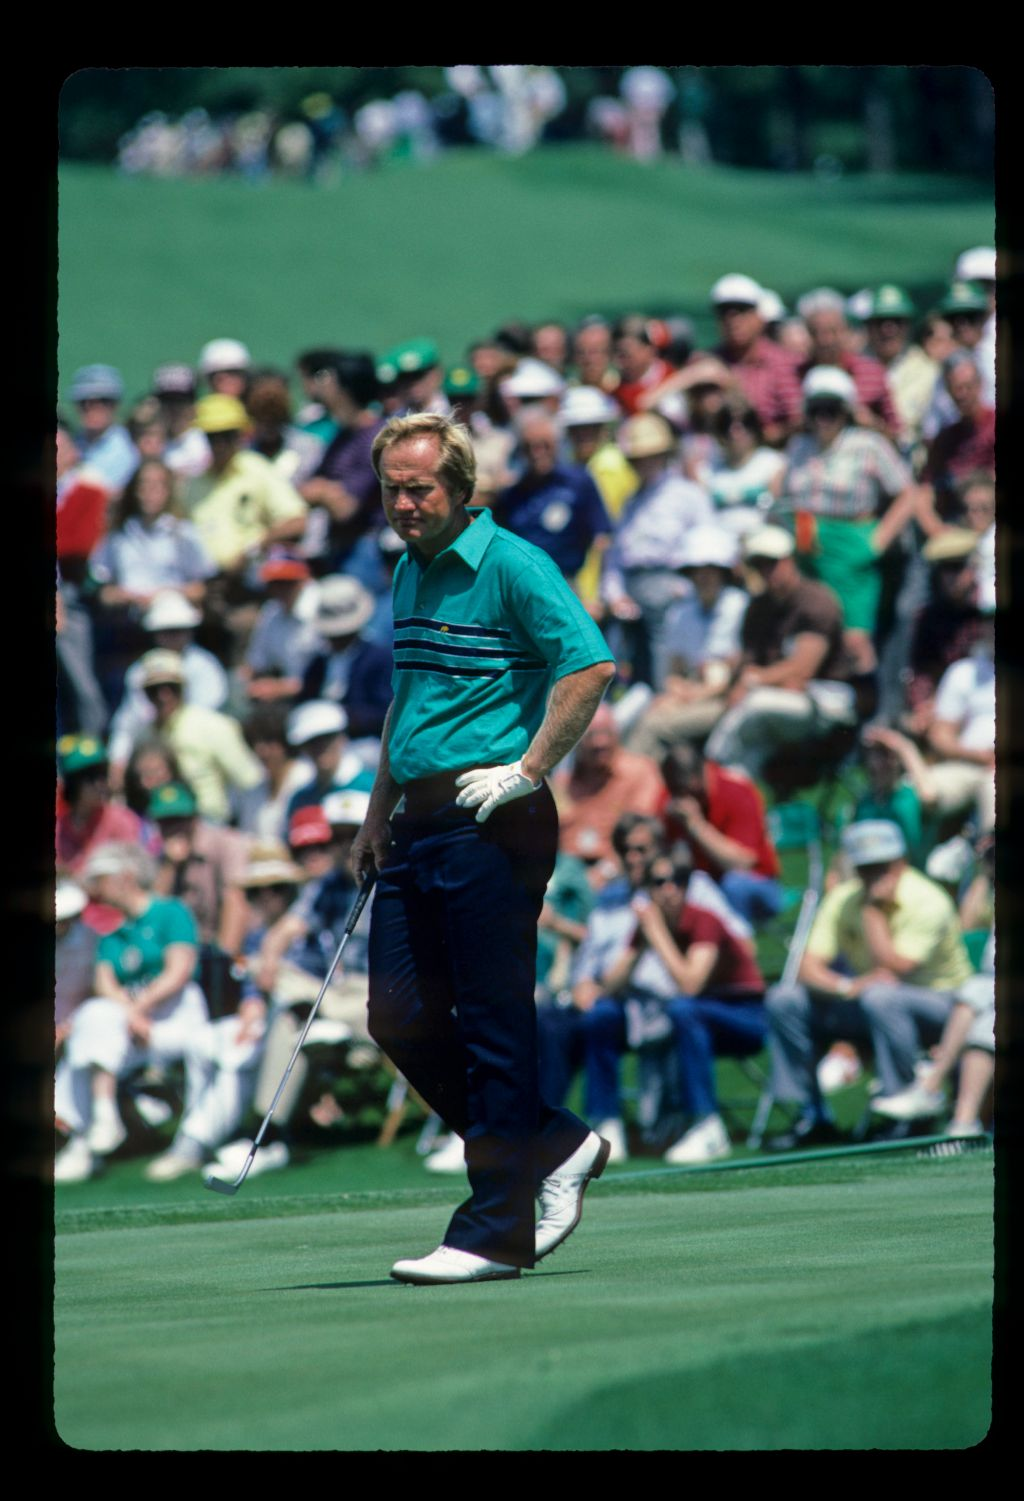 Jack Nicklaus stalking the green during the 1984 Masters